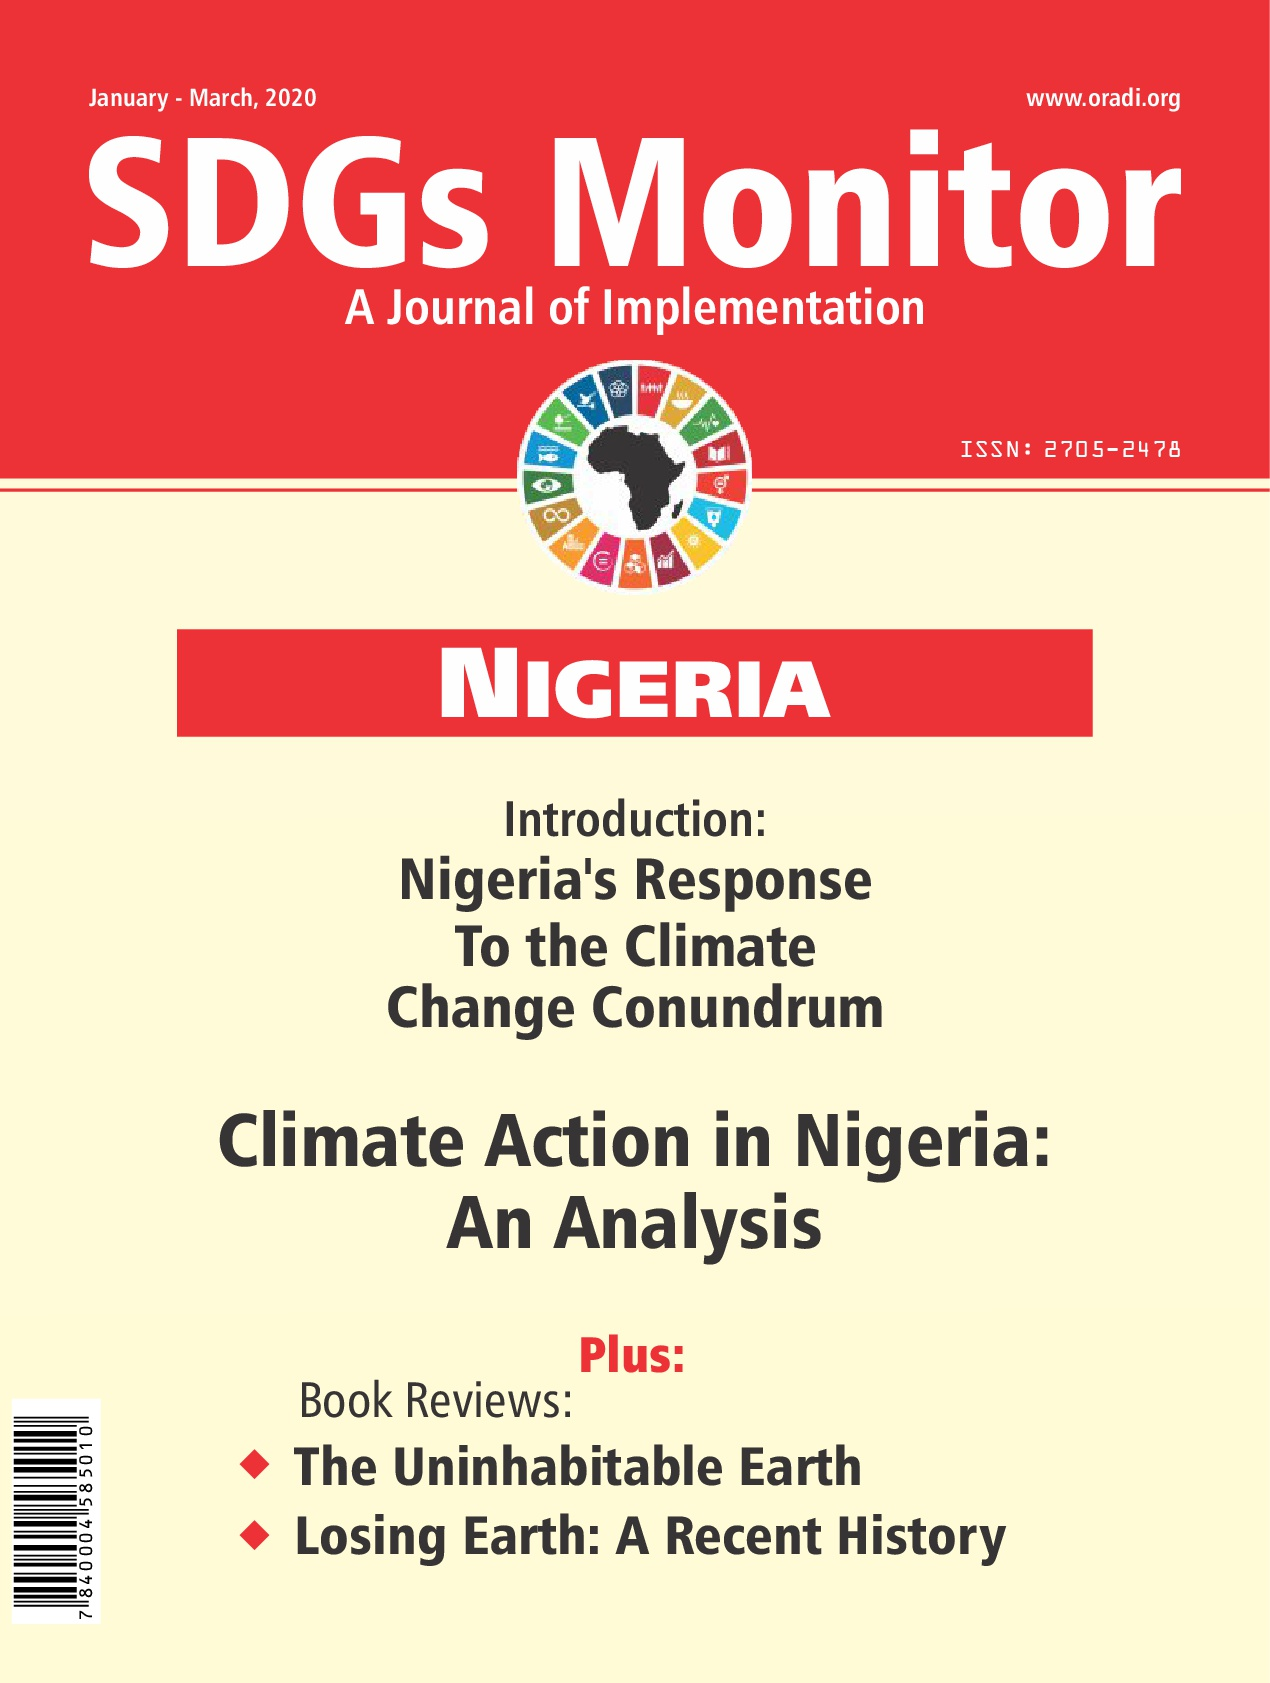 SDGs Monitor Journal (Jan - Mar, 2020 Edition)